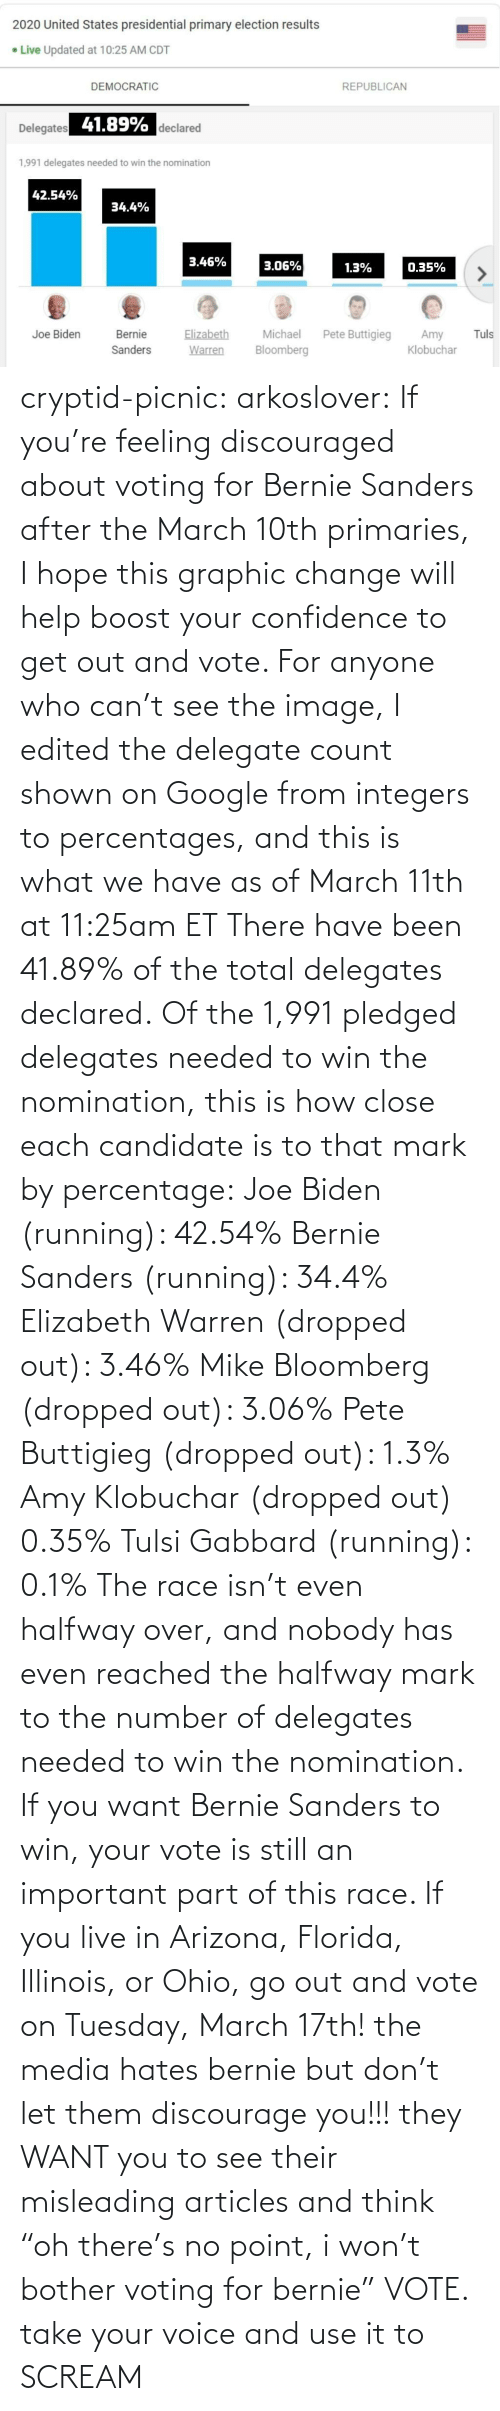 "Arizona: cryptid-picnic: arkoslover:   If you're feeling discouraged about voting for Bernie Sanders after the March 10th primaries, I hope this graphic change will help boost your confidence to get out and vote. For anyone who can't see the image, I edited the delegate count shown on Google from integers to percentages, and this is what we have as of March 11th at 11:25am ET There have been 41.89% of the total delegates declared. Of the 1,991 pledged delegates needed to win the nomination, this is how close each candidate is to that mark by percentage: Joe Biden (running): 42.54% Bernie Sanders (running): 34.4% Elizabeth Warren (dropped out): 3.46% Mike Bloomberg (dropped out): 3.06% Pete Buttigieg (dropped out): 1.3% Amy Klobuchar (dropped out) 0.35% Tulsi Gabbard (running): 0.1% The race isn't even halfway over, and nobody has even reached the halfway mark to the number of delegates needed to win the nomination. If you want Bernie Sanders to win, your vote is still an important part of this race. If you live in Arizona, Florida, Illinois, or Ohio, go out and vote on Tuesday, March 17th!    the media hates bernie but don't let them discourage you!!! they WANT you to see their misleading articles and think ""oh there's no point, i won't bother voting for bernie"" VOTE. take your voice and use it to SCREAM"